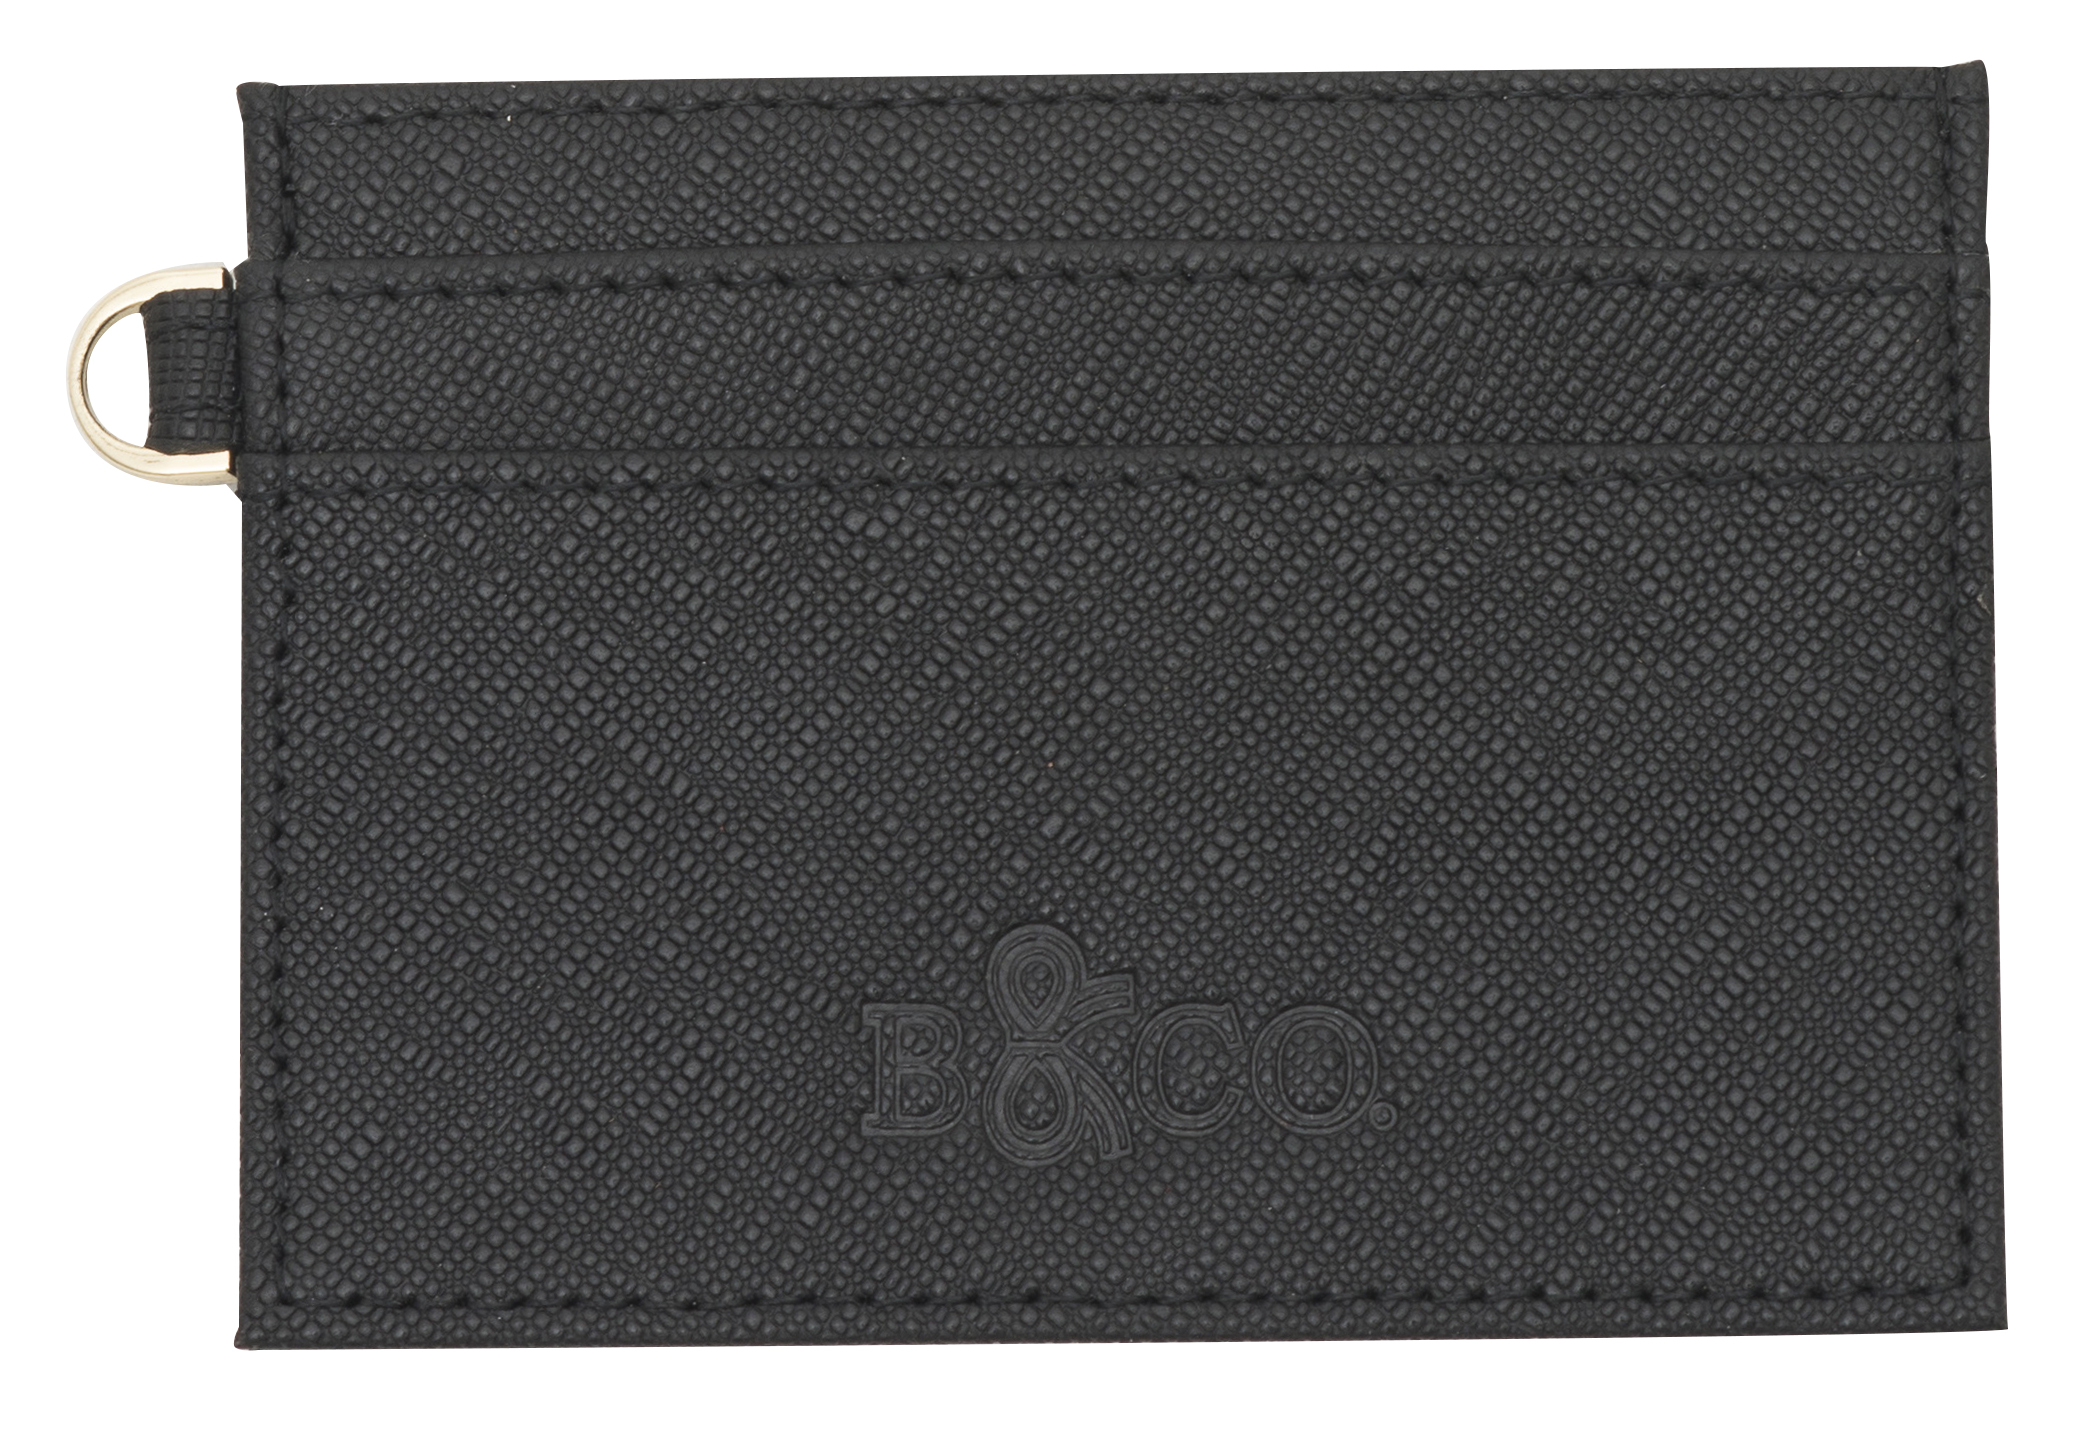 Saffiano Leather Card Holder - Black